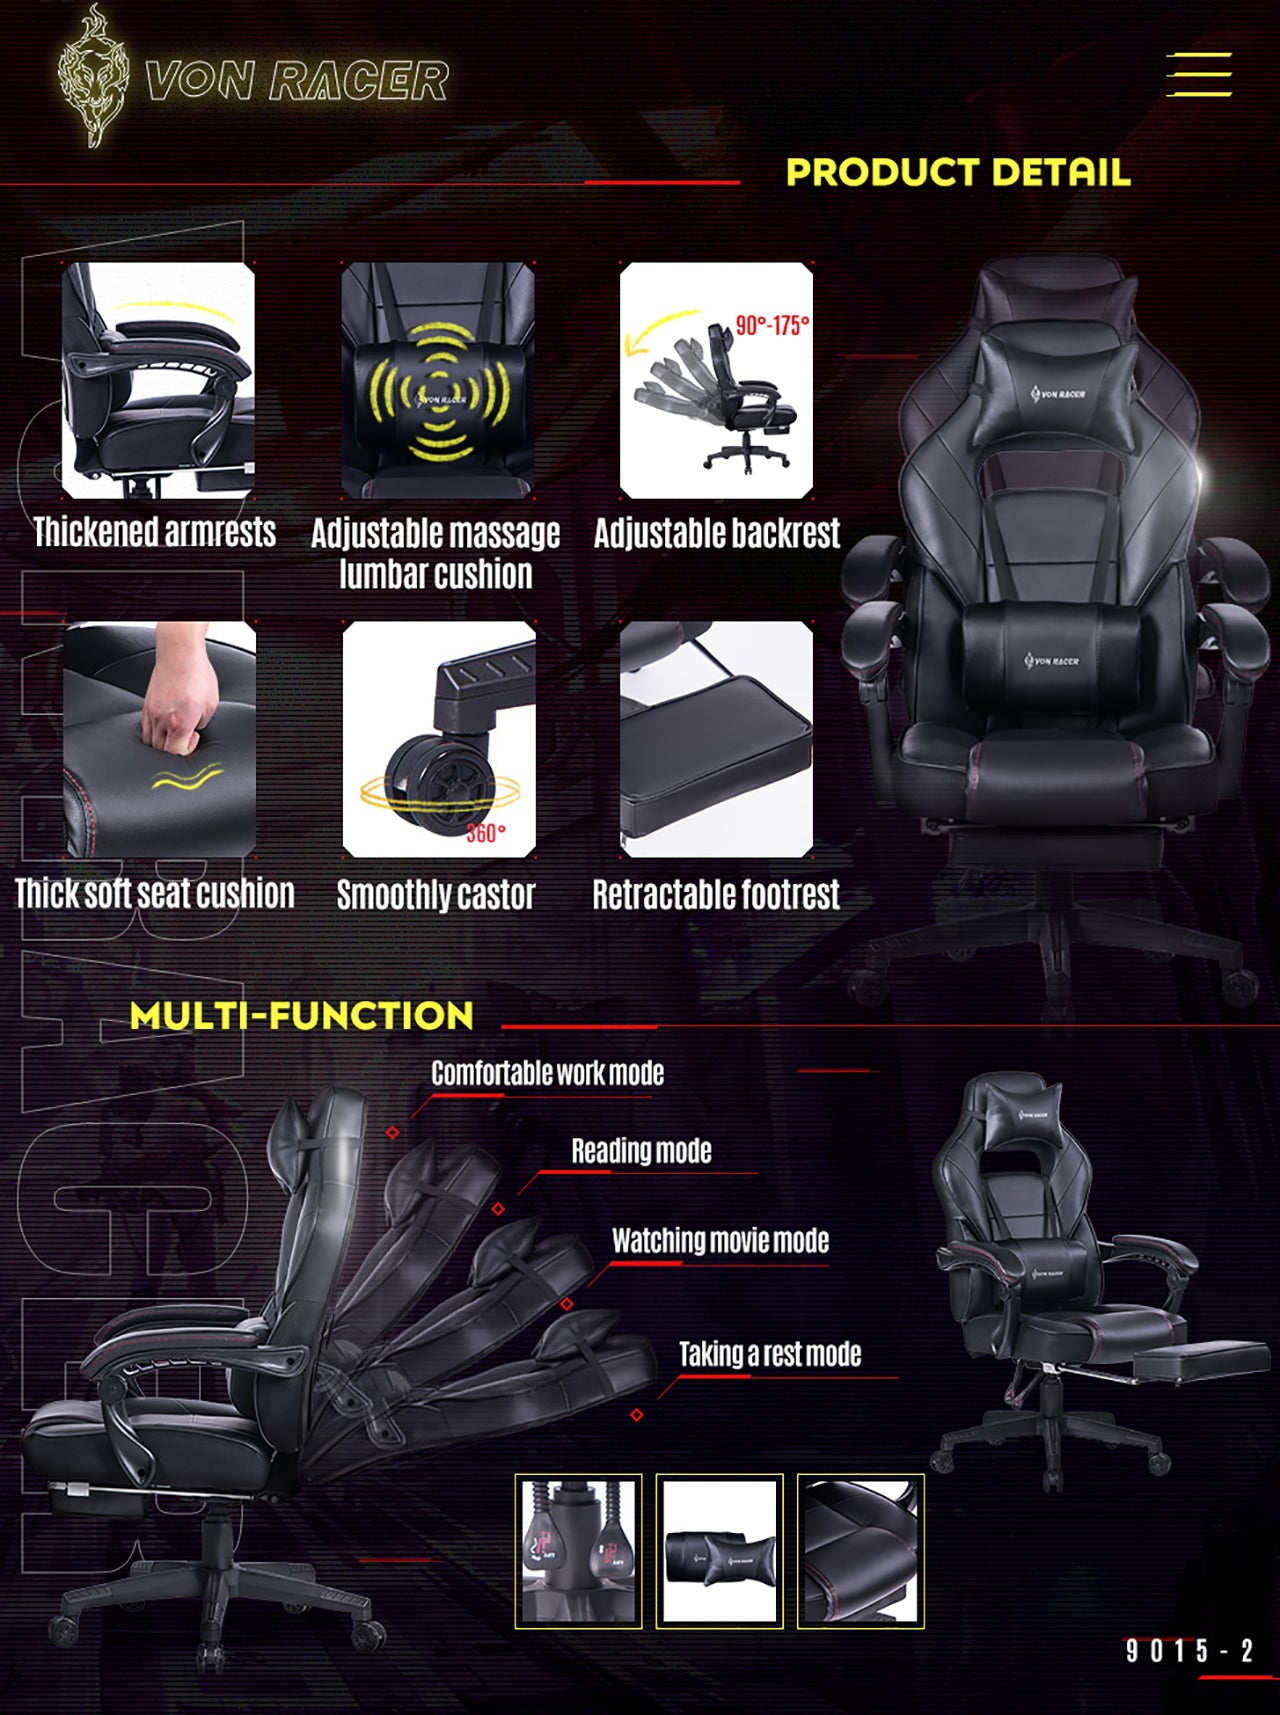 VON RACER 9015 BLACK RECLINING MASSAGE GAMING CHAIR WITH FOOTREST FEATURES